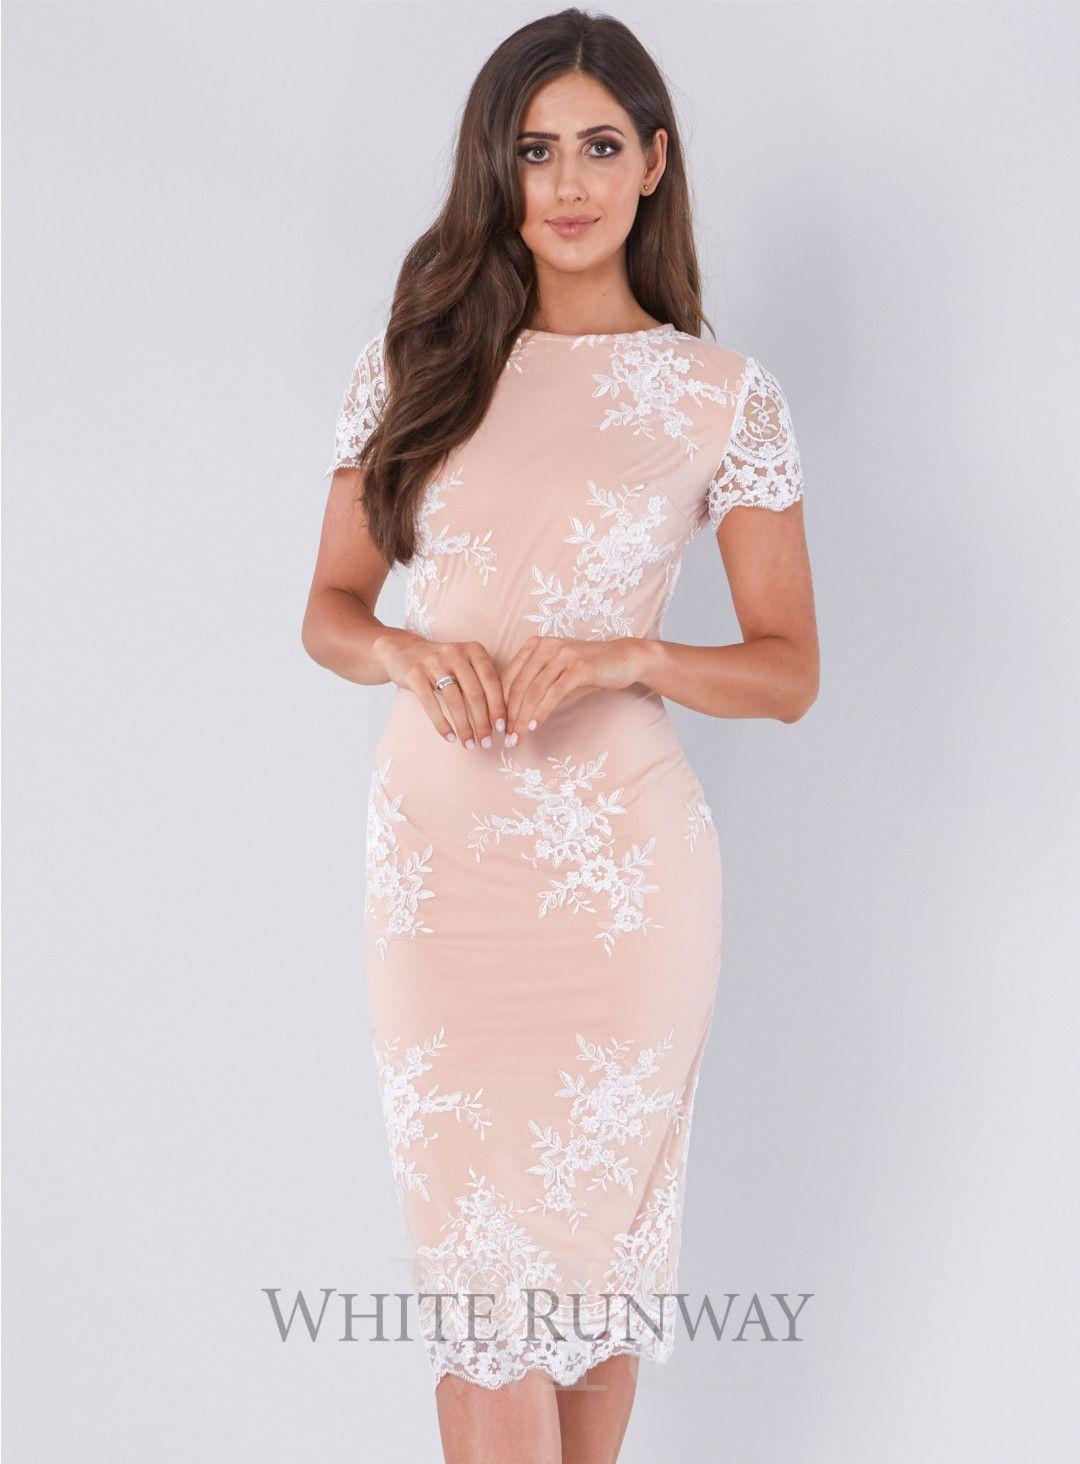 585fd9a4ff58 Laura Lace Dress. A gorgeous midi-length dress by Australian designer  Giselle & Sophia. A pink/nude lace dress featuring cap sleeves and a  scalloped lace ...